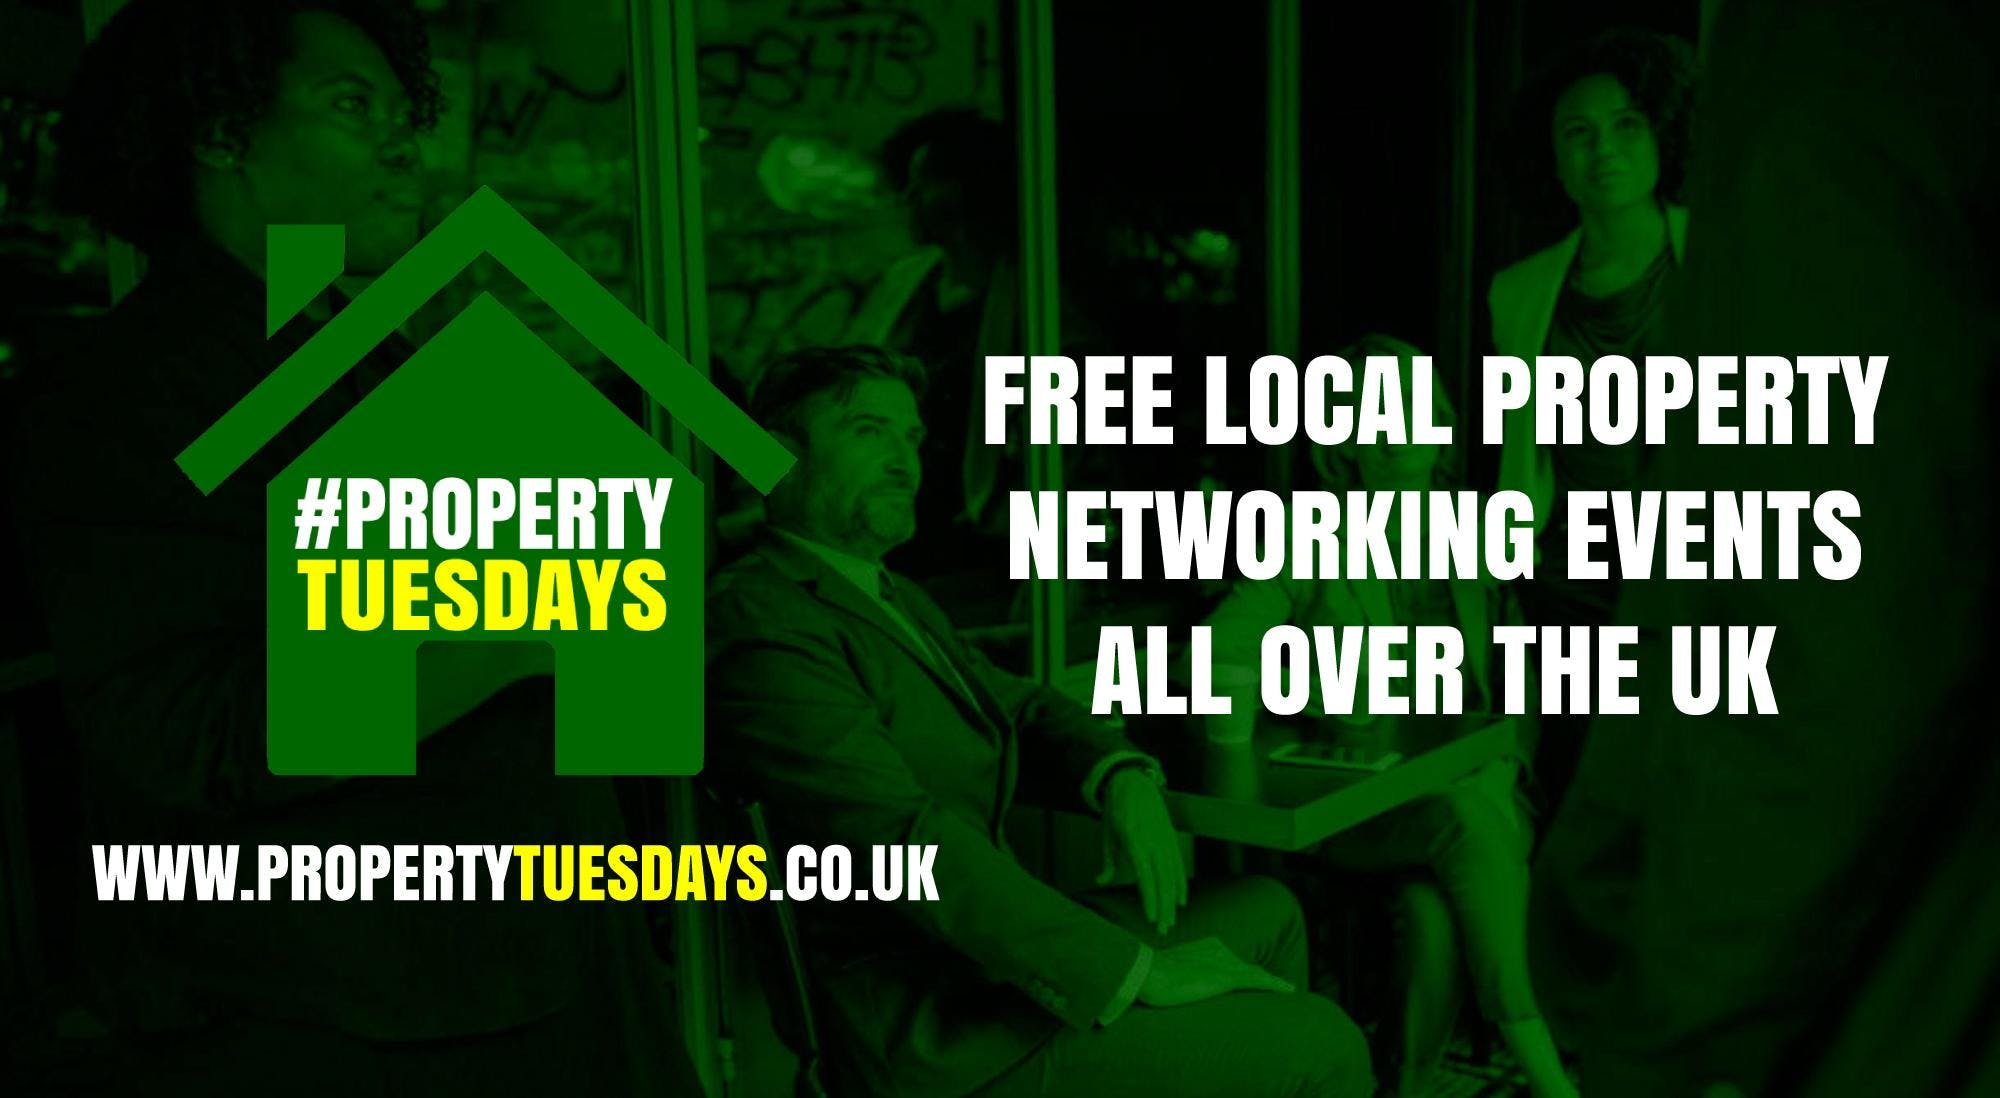 Property Tuesdays! Free property networking event in Stratford